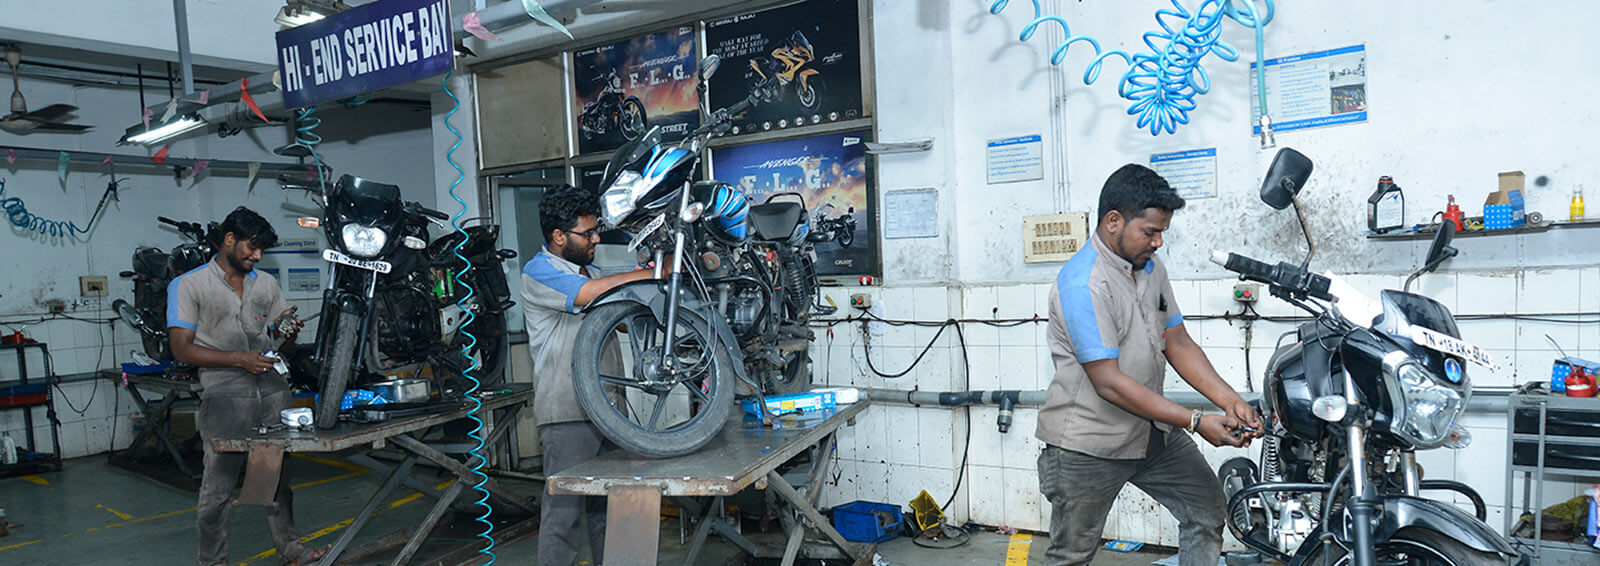 Bajaj Service Center in Chennai